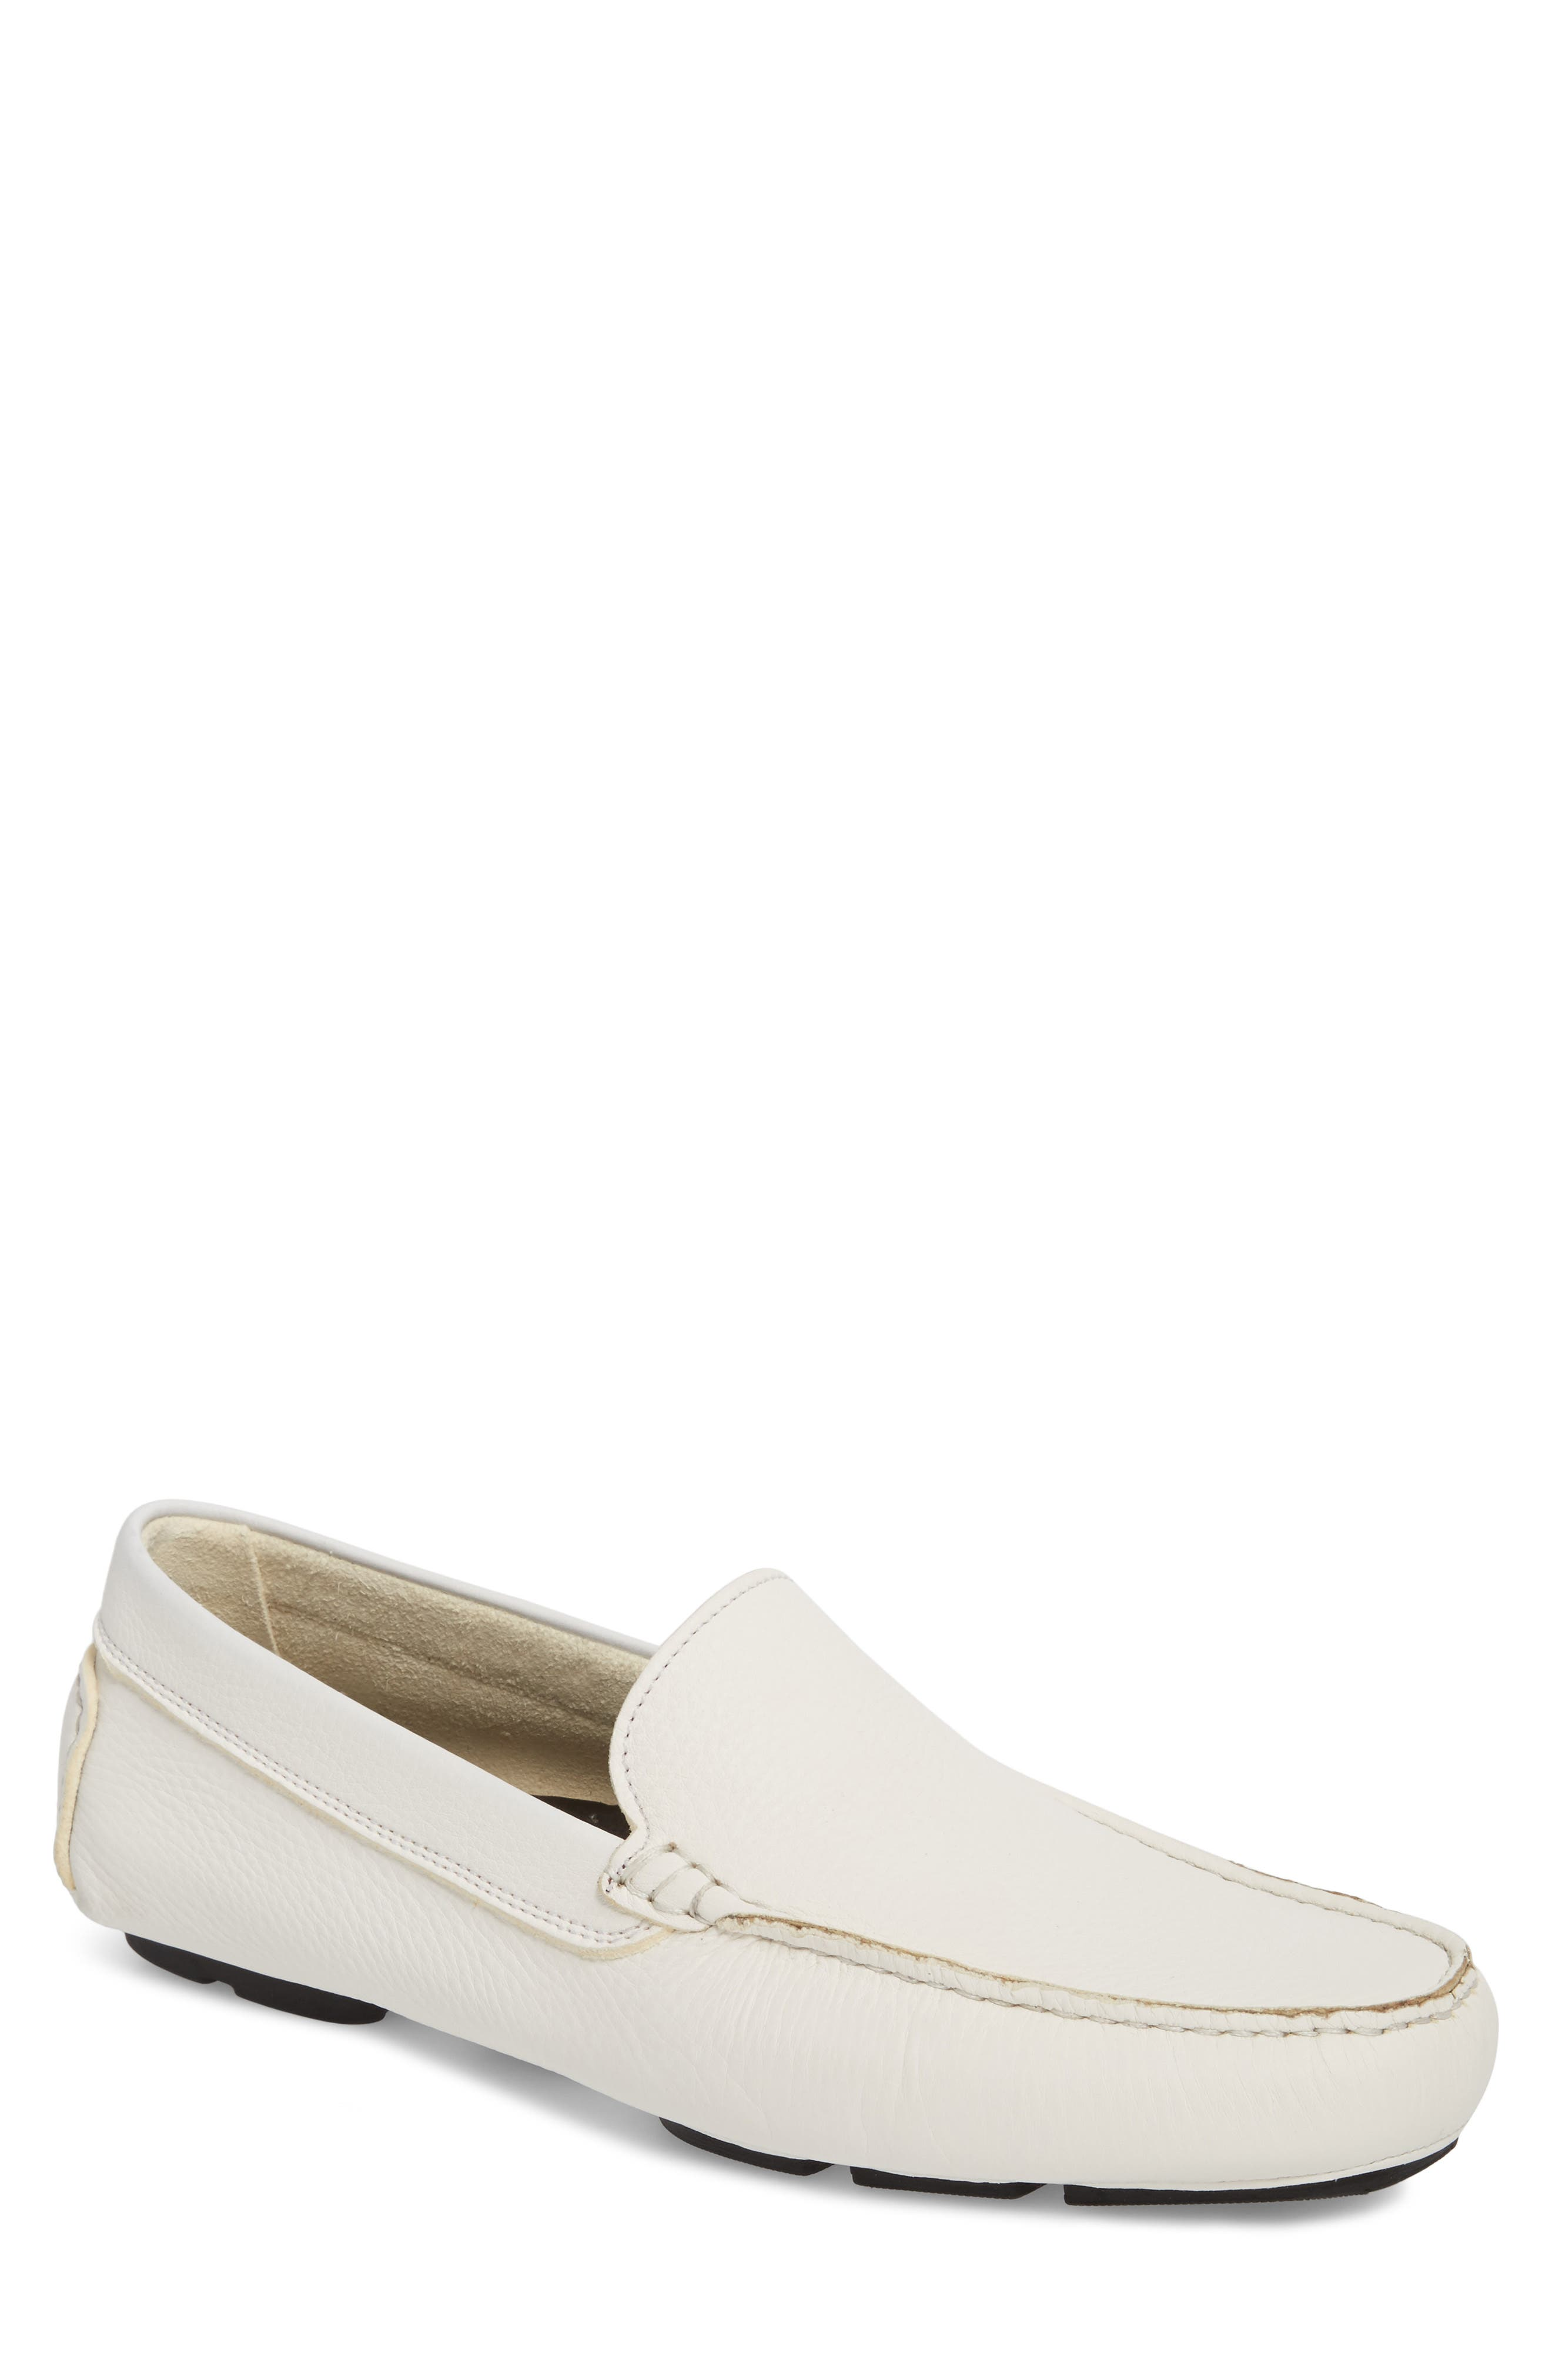 Harlan Driving Loafer,                         Main,                         color, White Leather